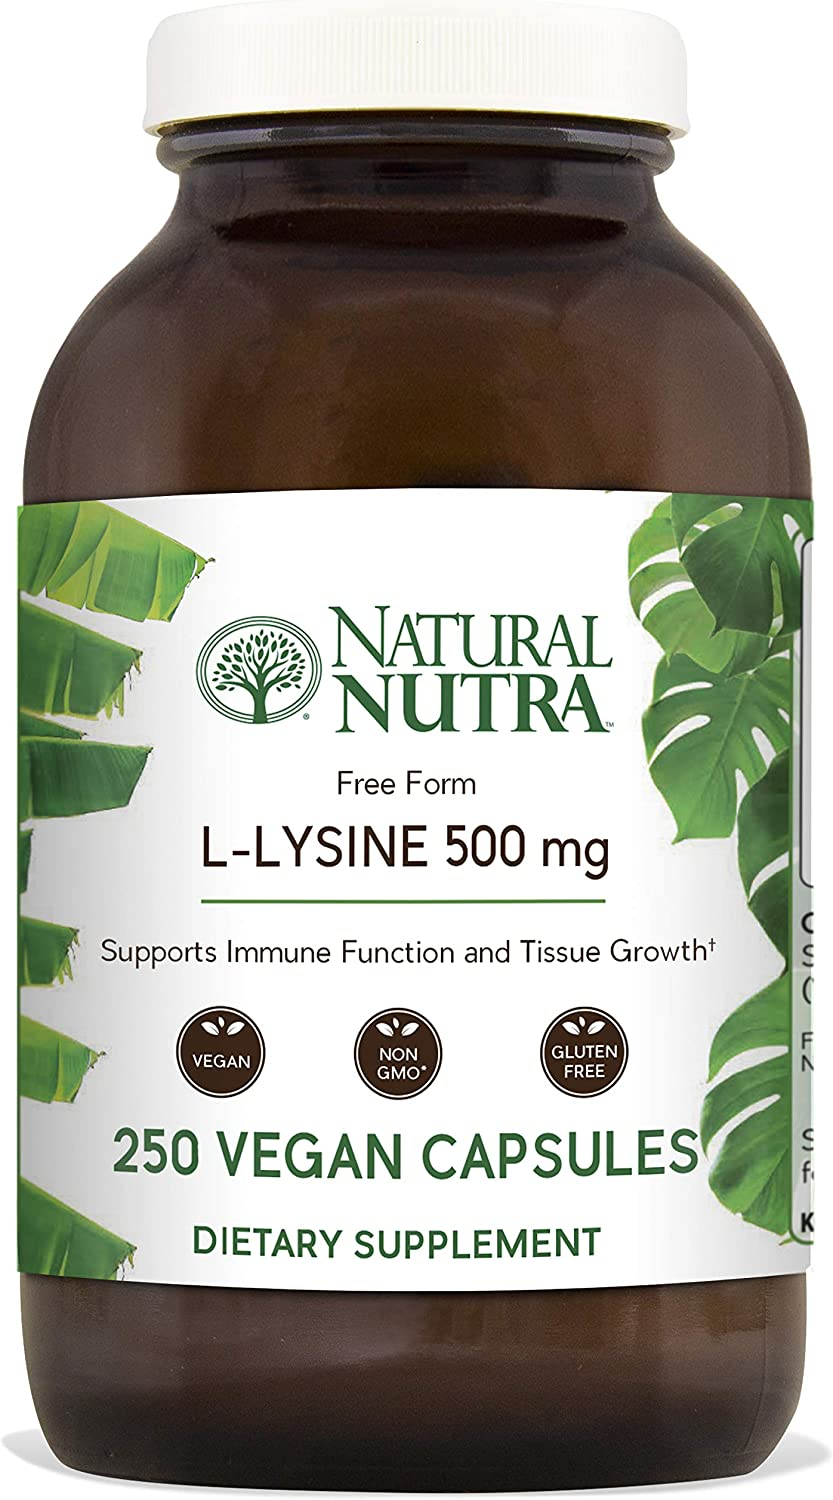 Natural Nutra L Lysine HCl, Free Form Alpha Amino Acid Supplement, Non GMO, Vegan, 500 mg, 250 Capsules